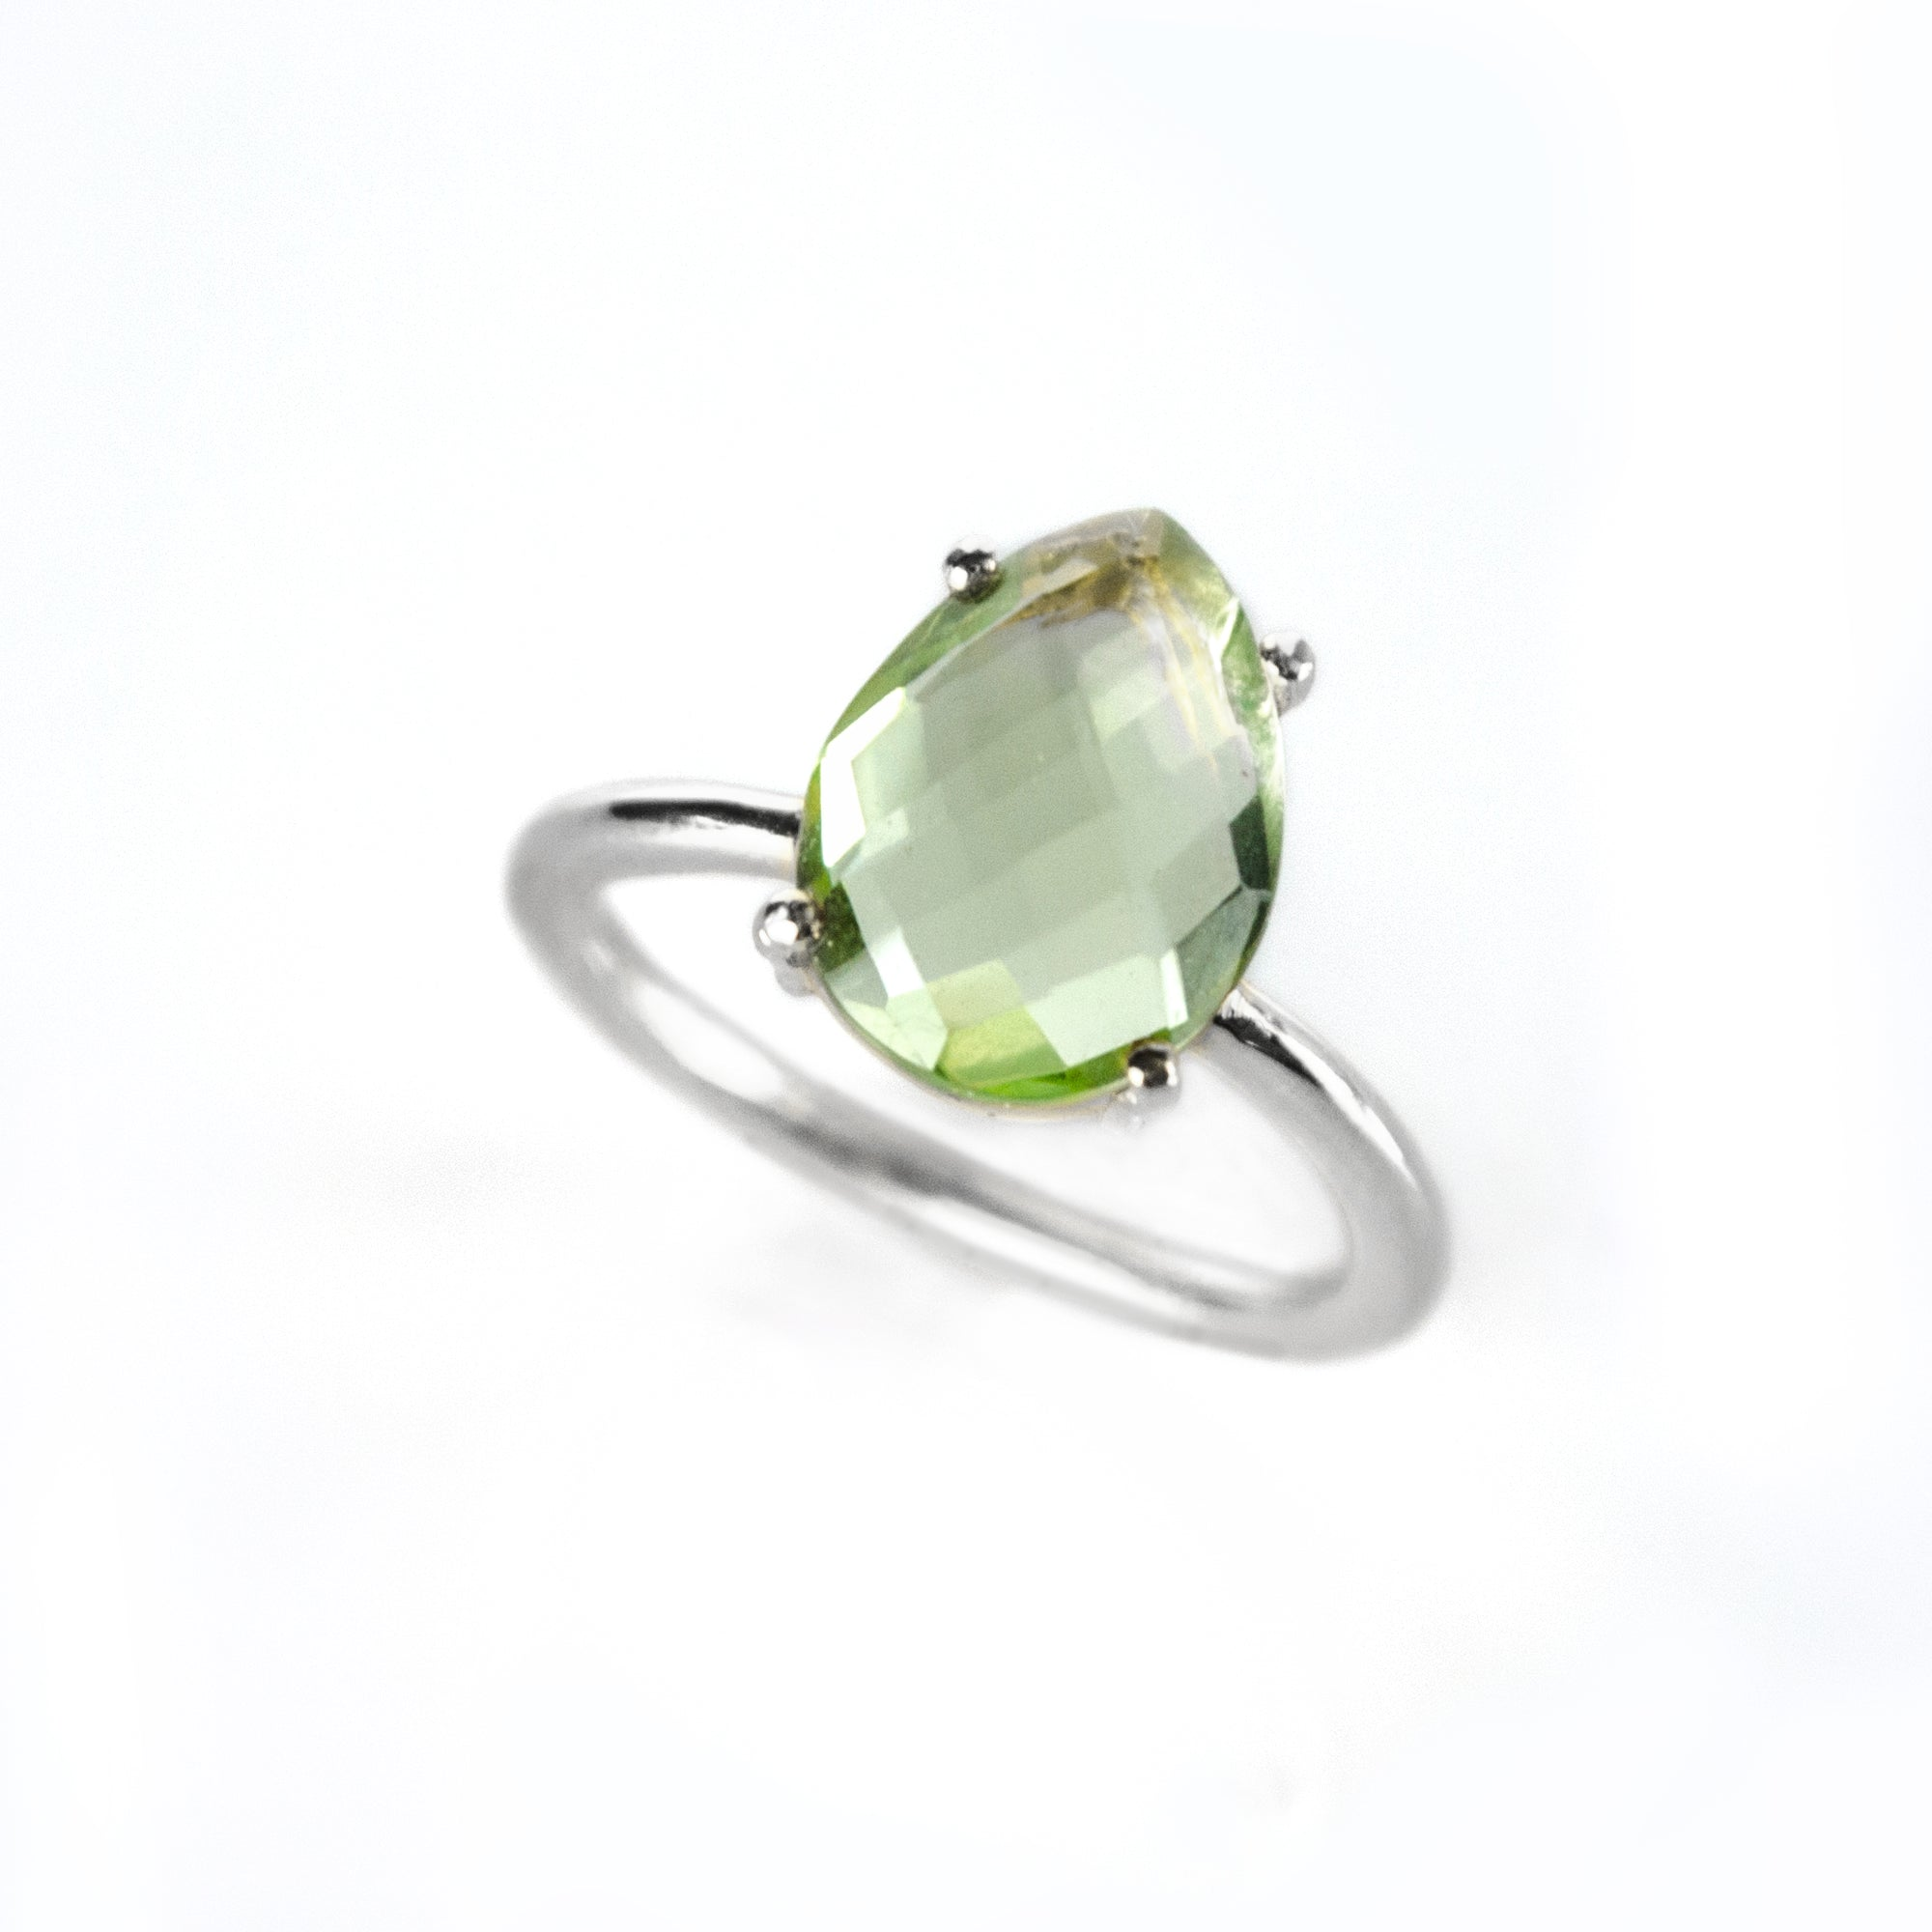 DV Jewels Lovely Ring with a Drop Shaped Labradorite Gemstone